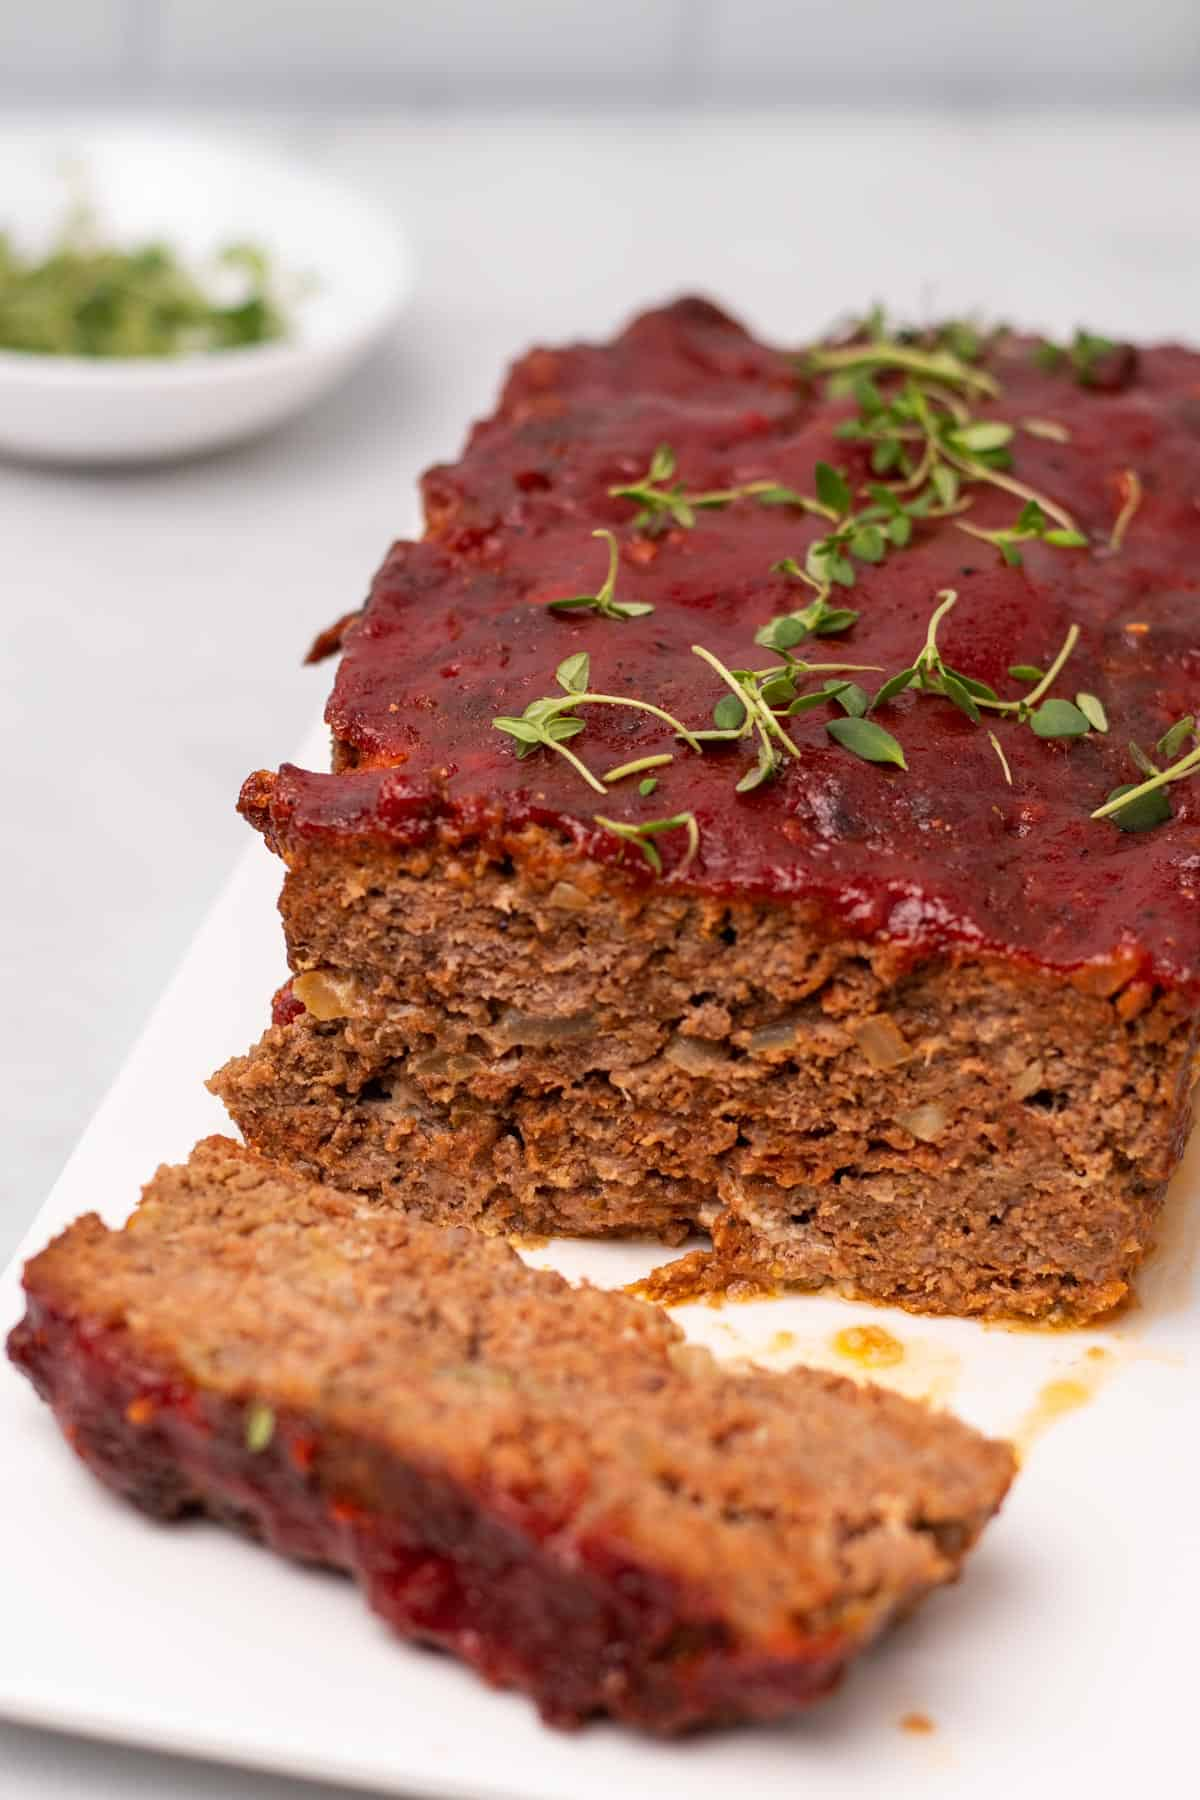 Meatloaf with one slice cut